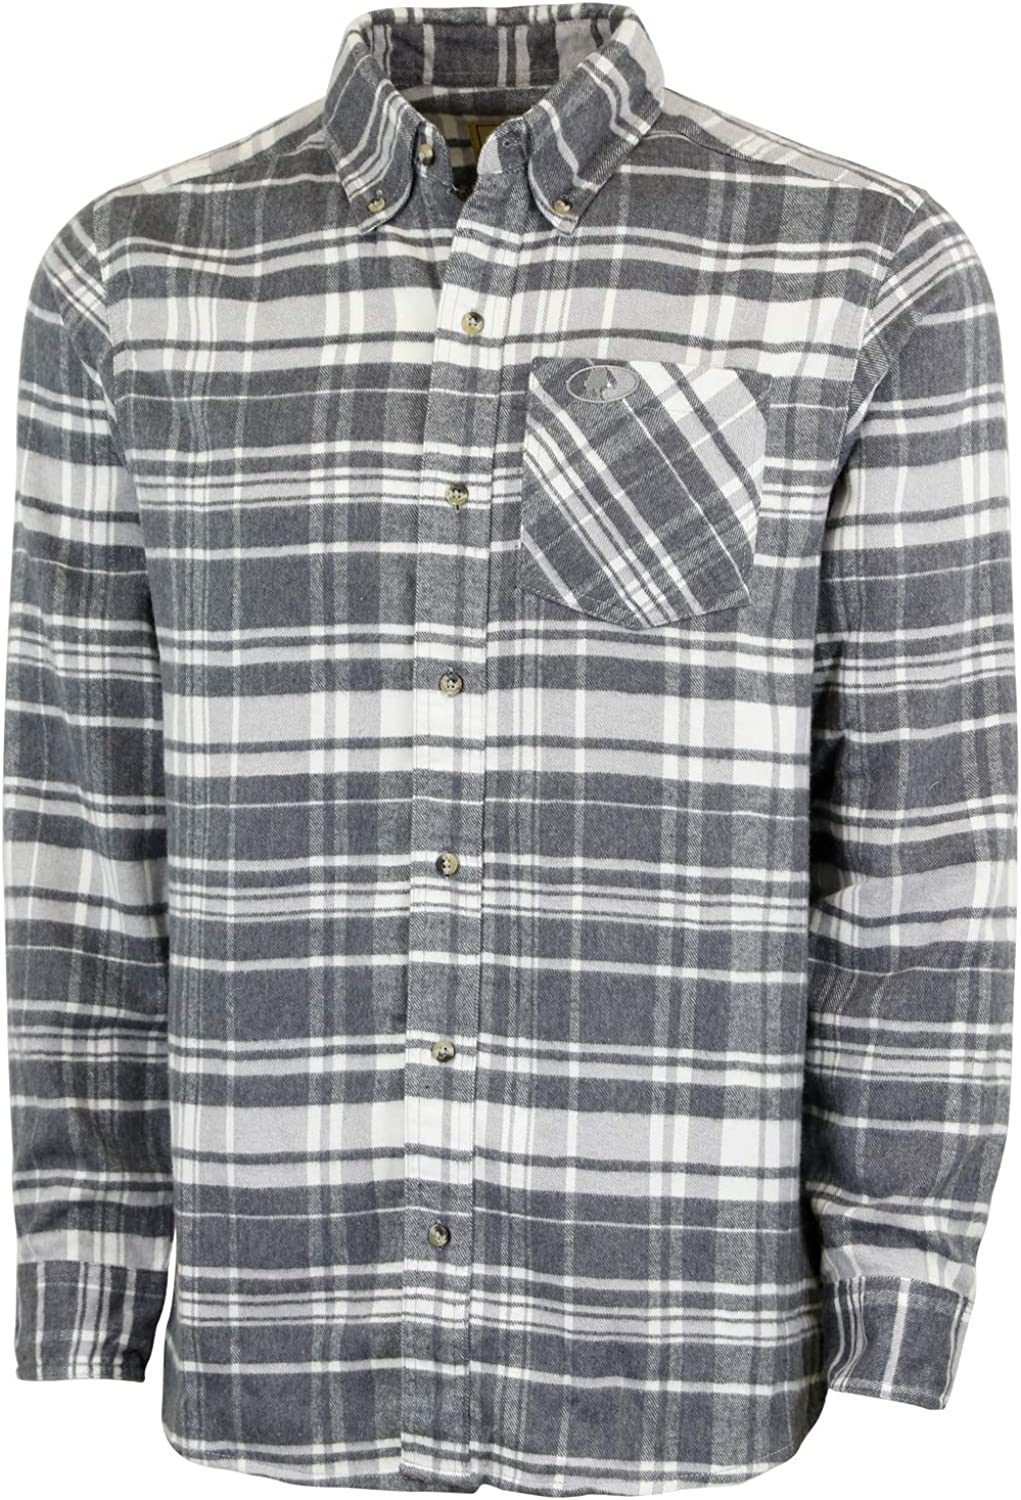 Mossy Oak Flannel Shirt for Men, Buffalo Plaid Long Sleeve Mens Flannel Shirts